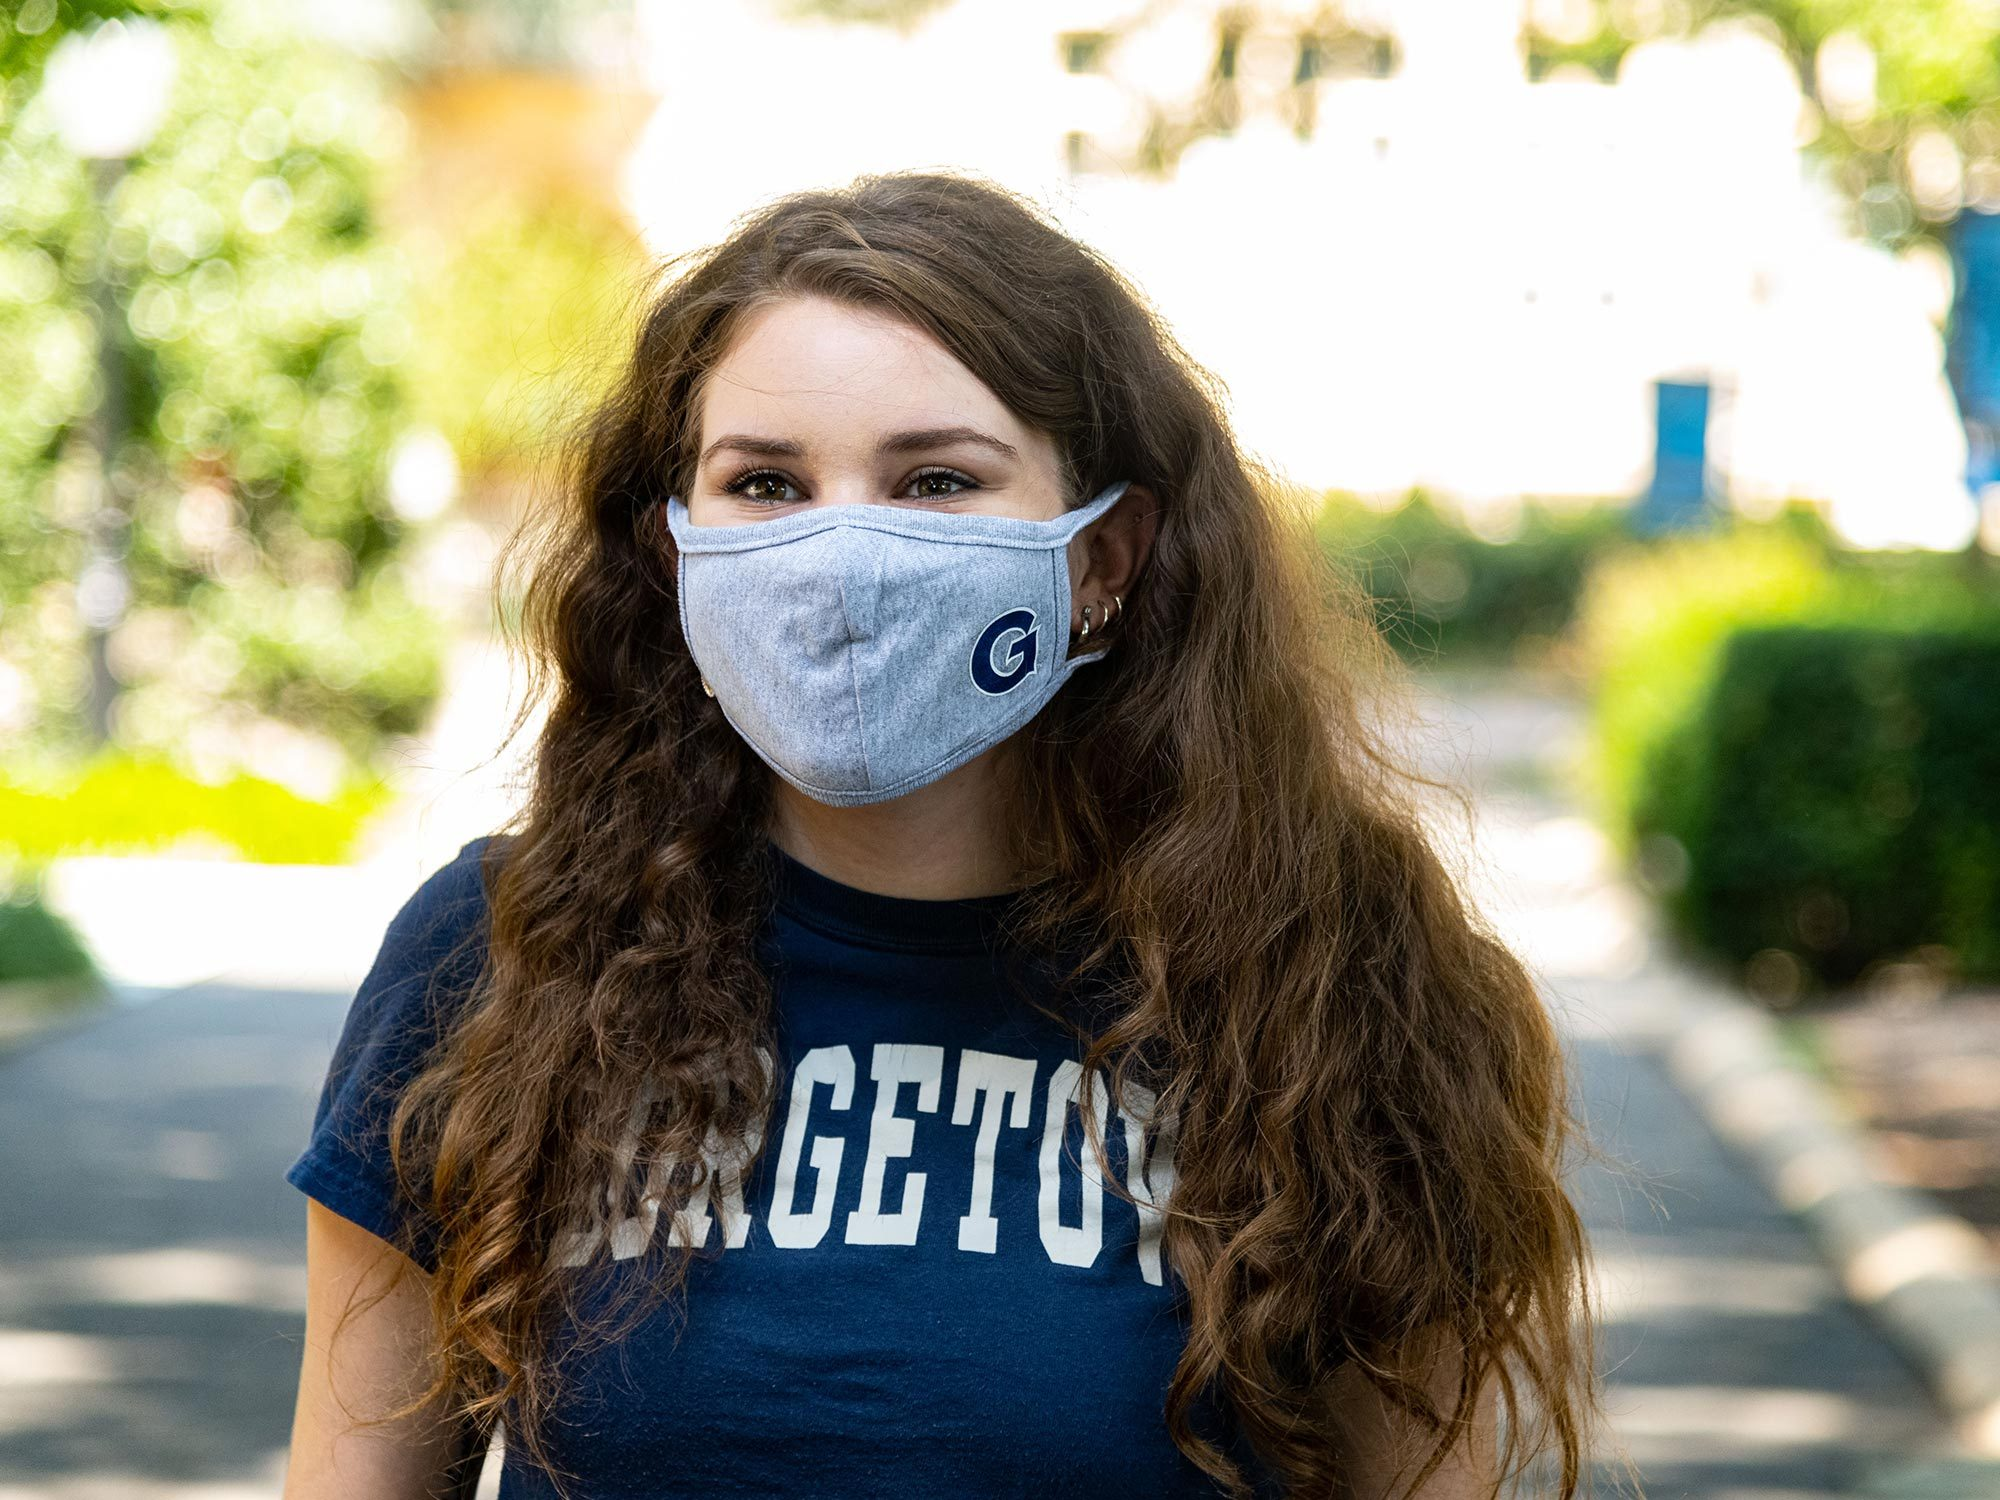 A student wearing a mask looks into the camera